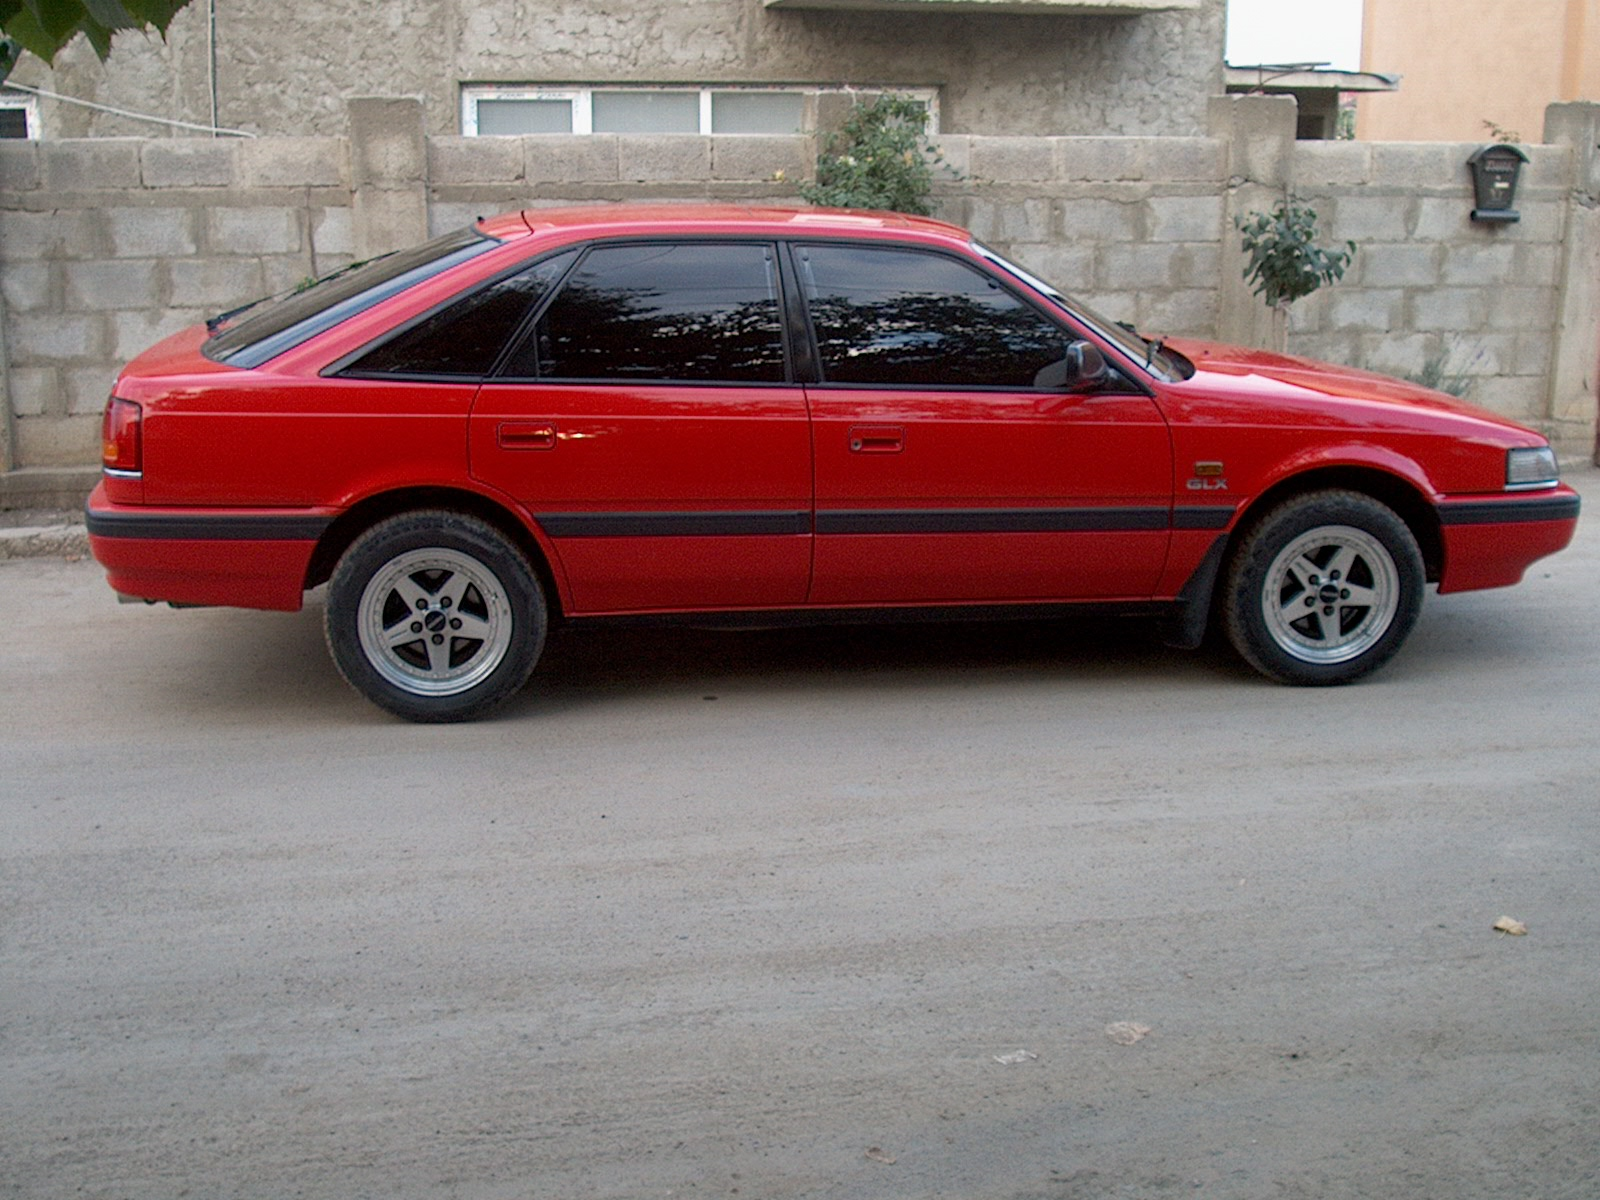 Red Mazda Capella 1979